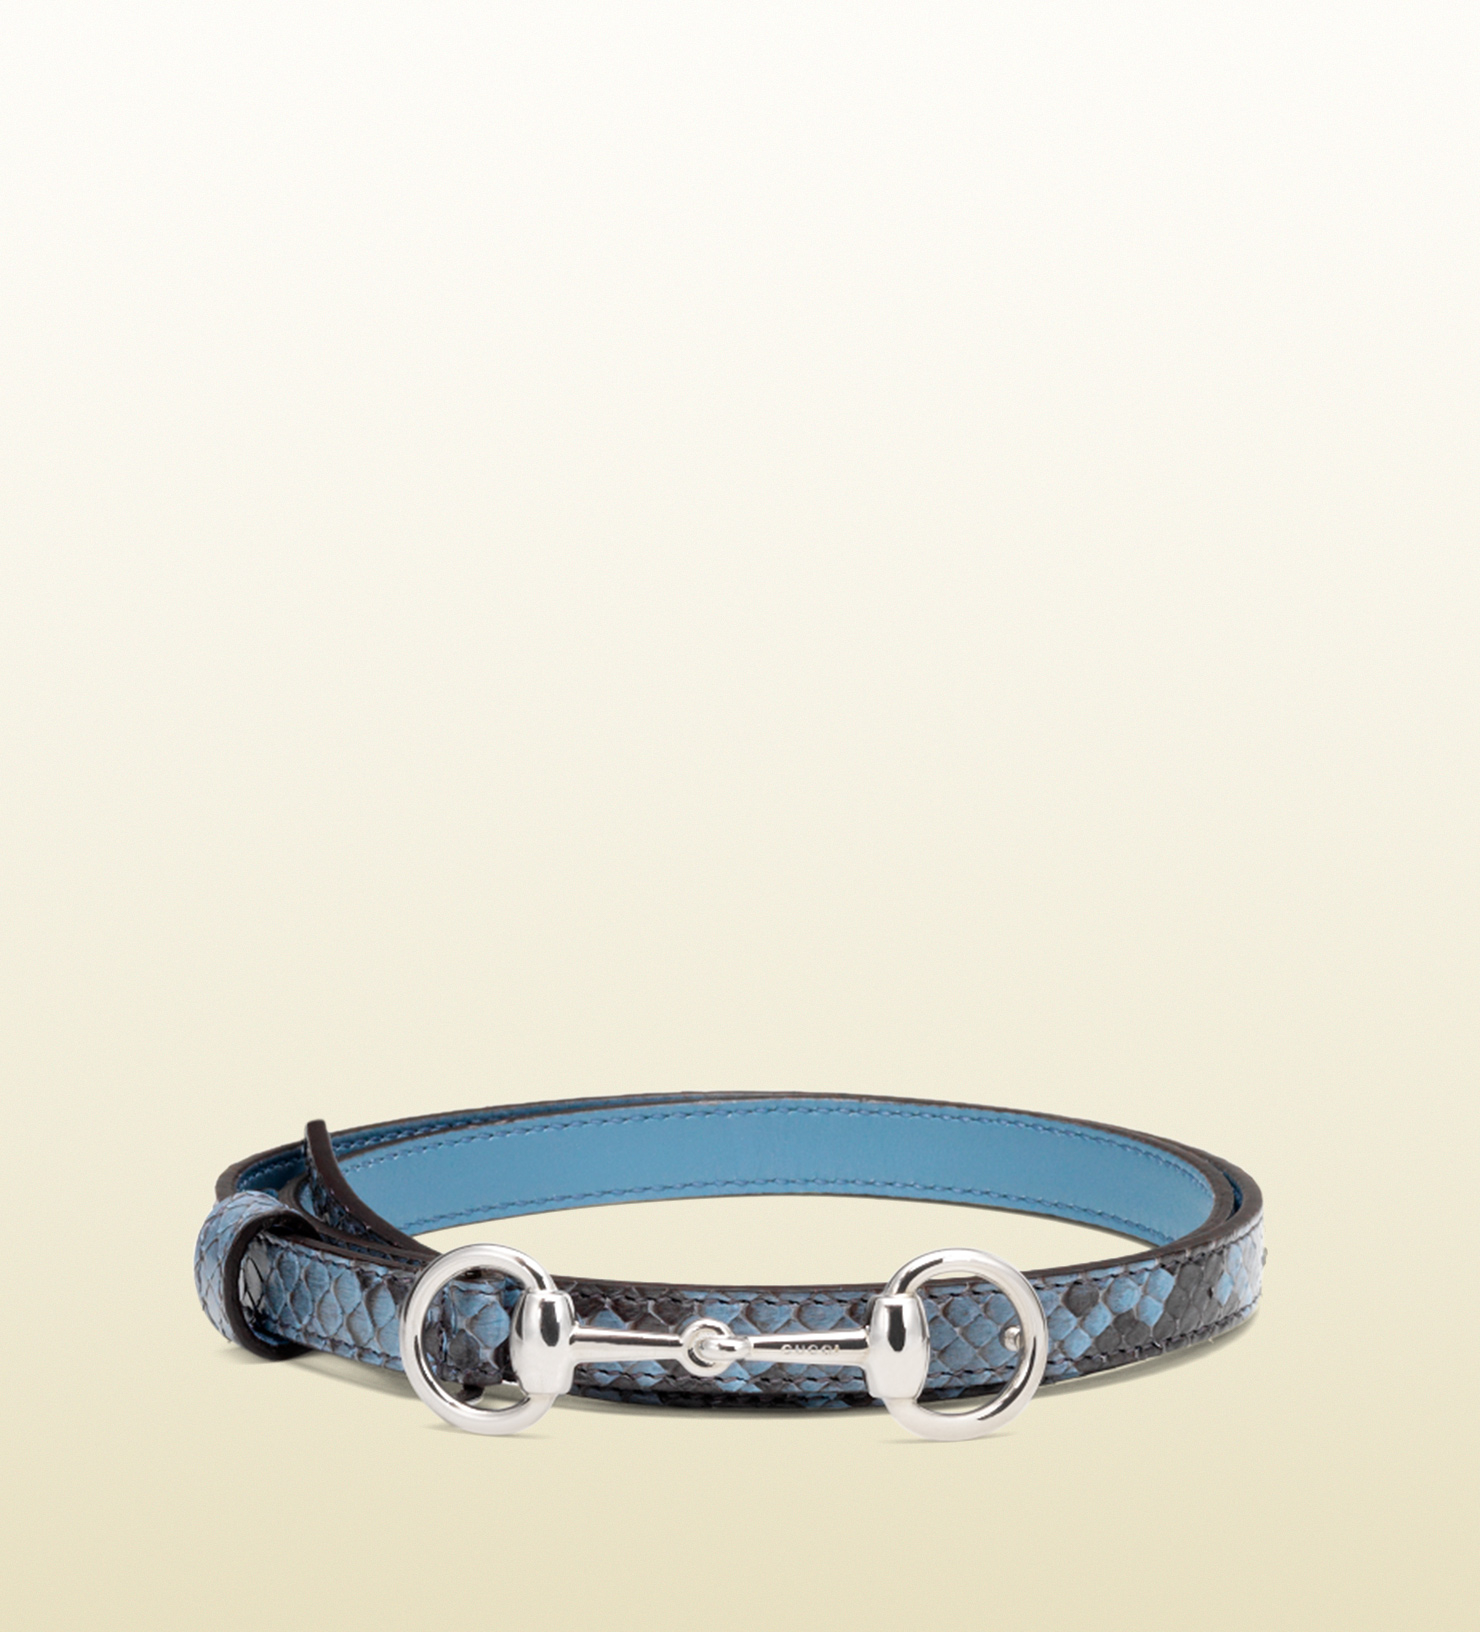 e79805538 Lyst - Gucci Python Skinny Belt With Horsebit Buckle in Blue